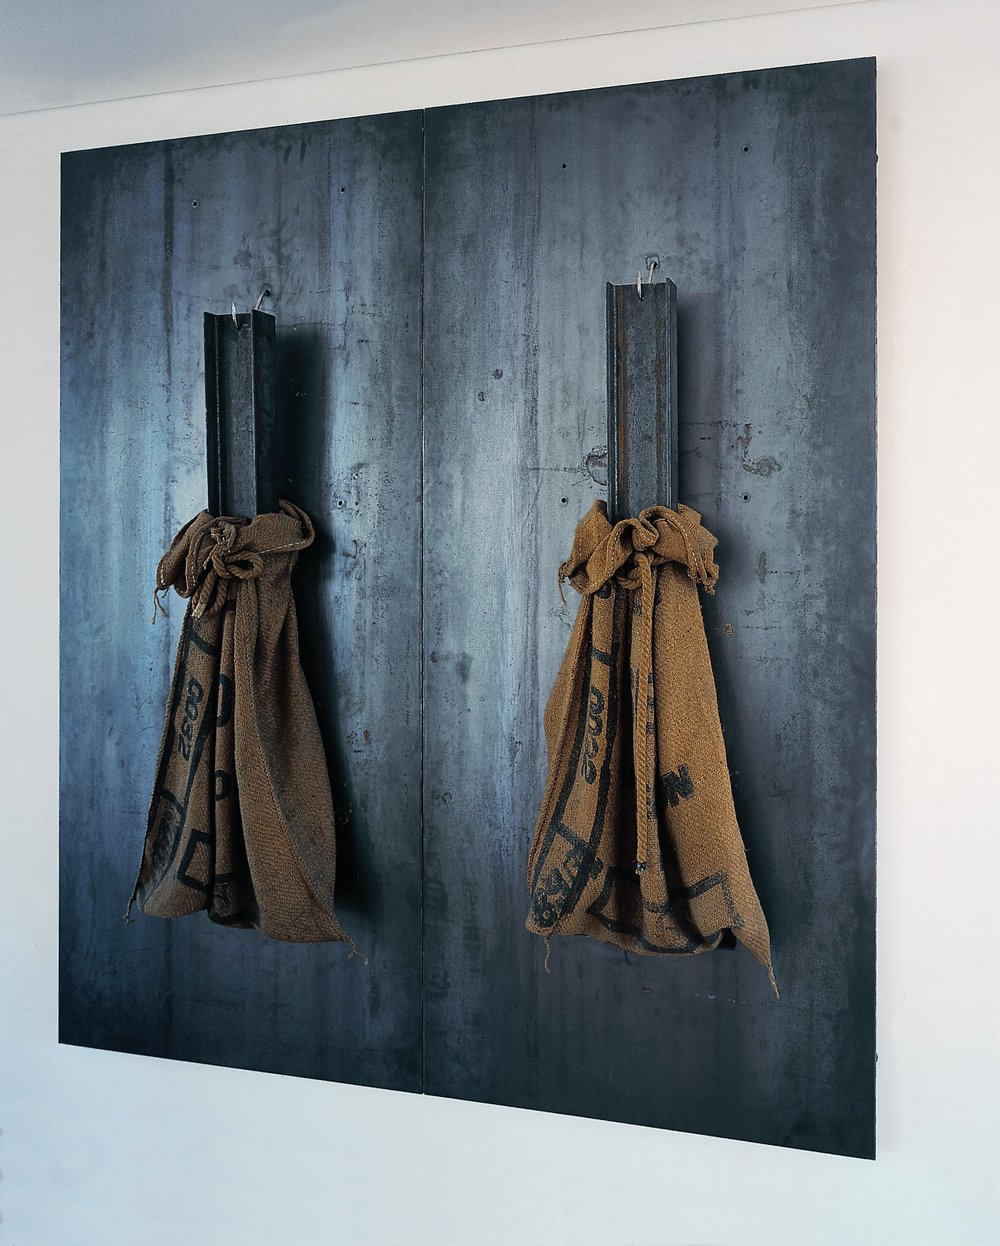 Jannis Kounellis  Untitled , Steel plates, iron beam, burlap sack and rope 78 3/4 x 71 inches SOLD